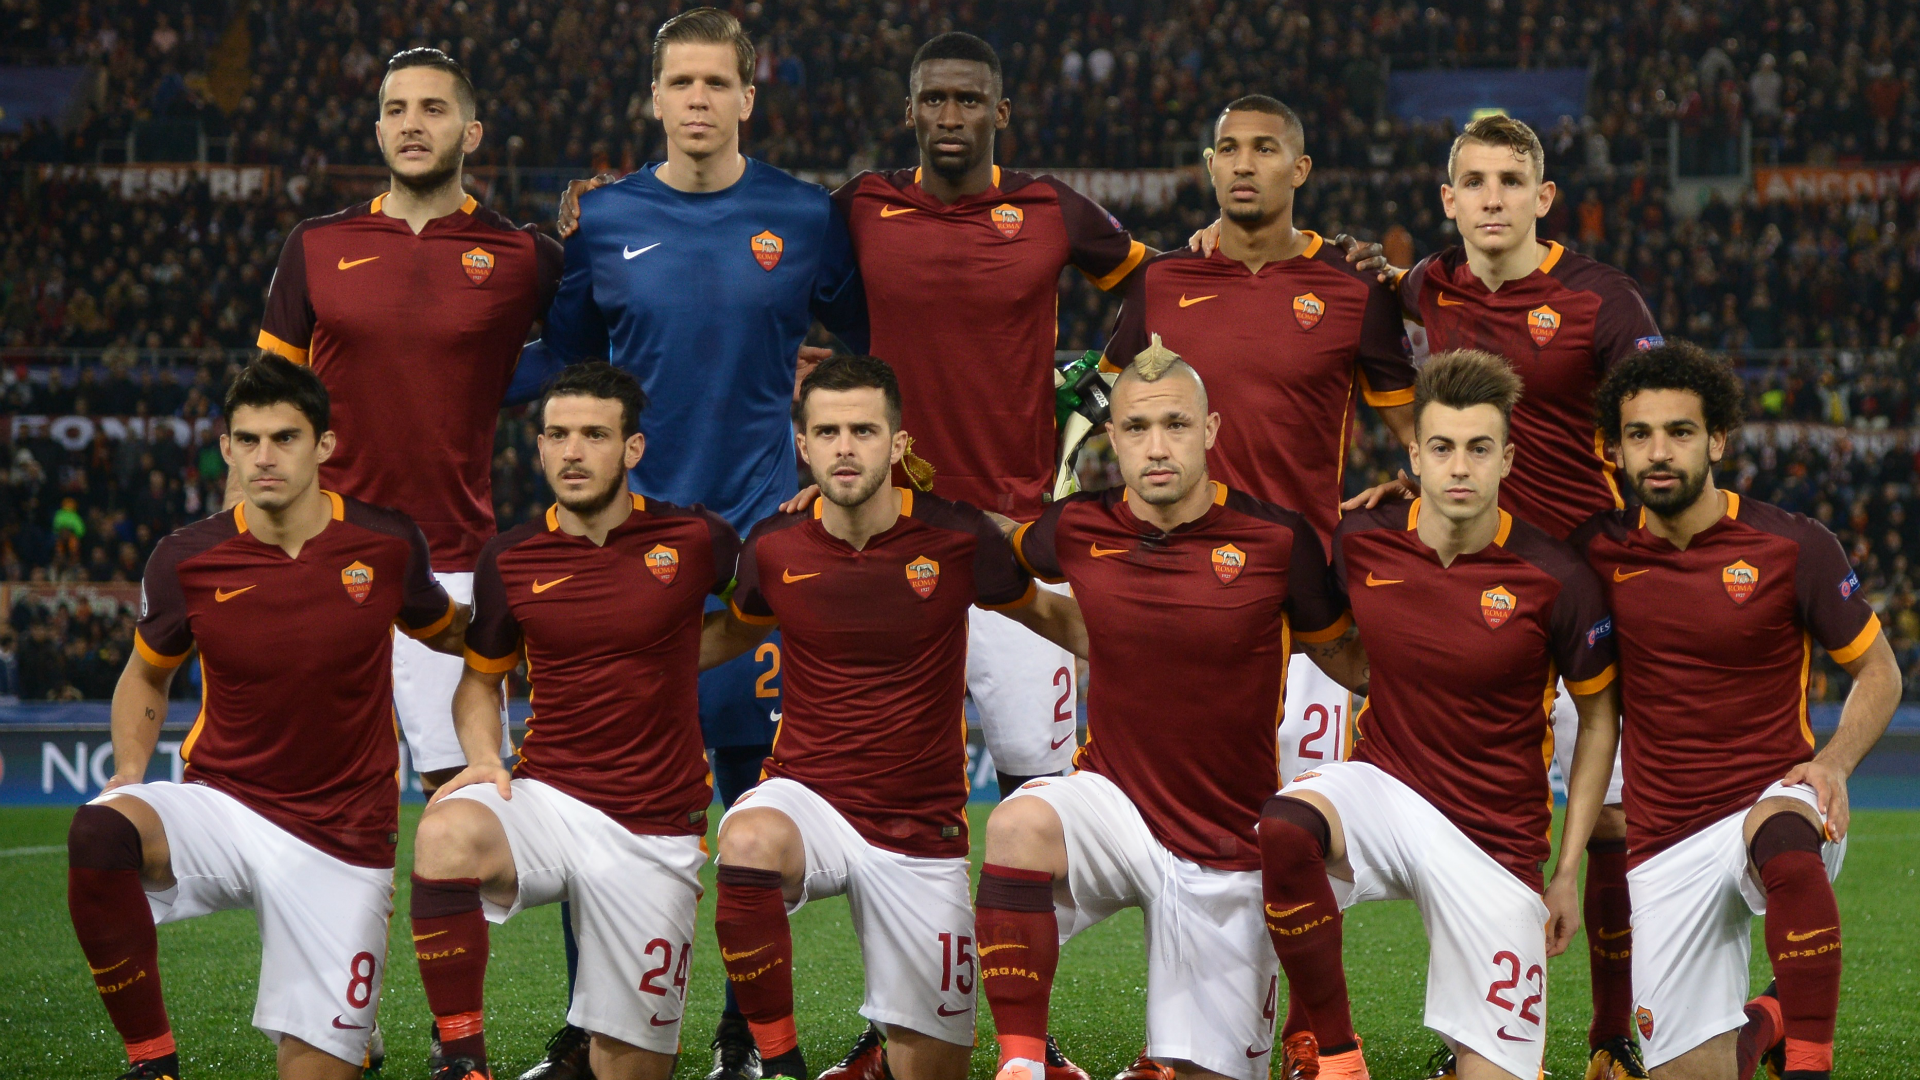 Roma lineup against Real Madrid in Champions League 2015-16